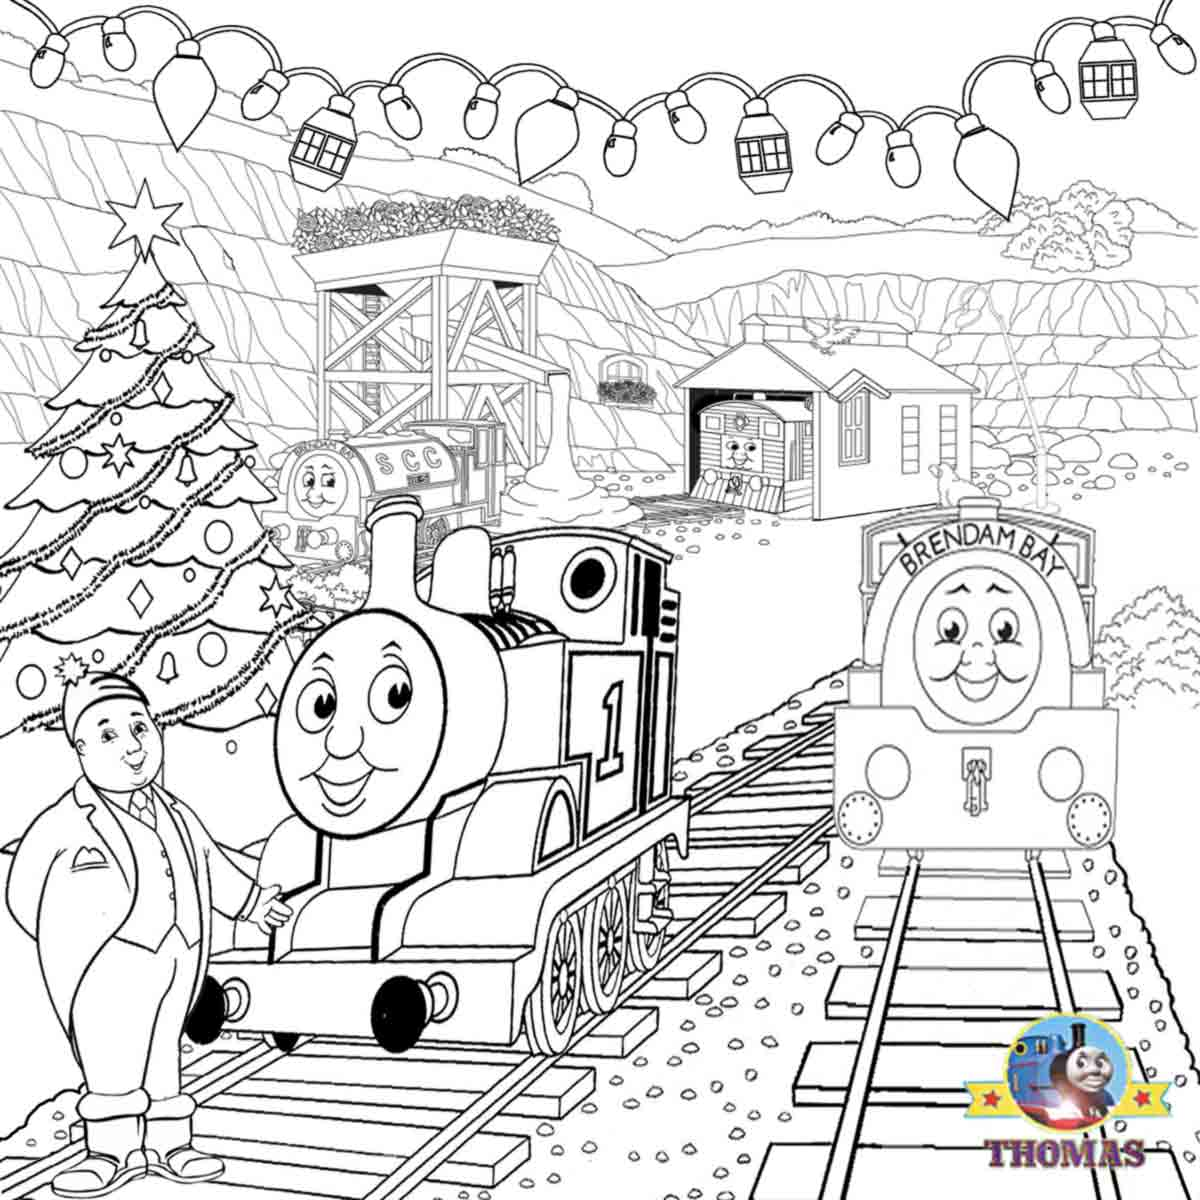 Kids christmas coloring and activity sheets - Fun Activities Printable Thomas Train And Friends Christmas Party Happy Xmas Coloring Pages To Color